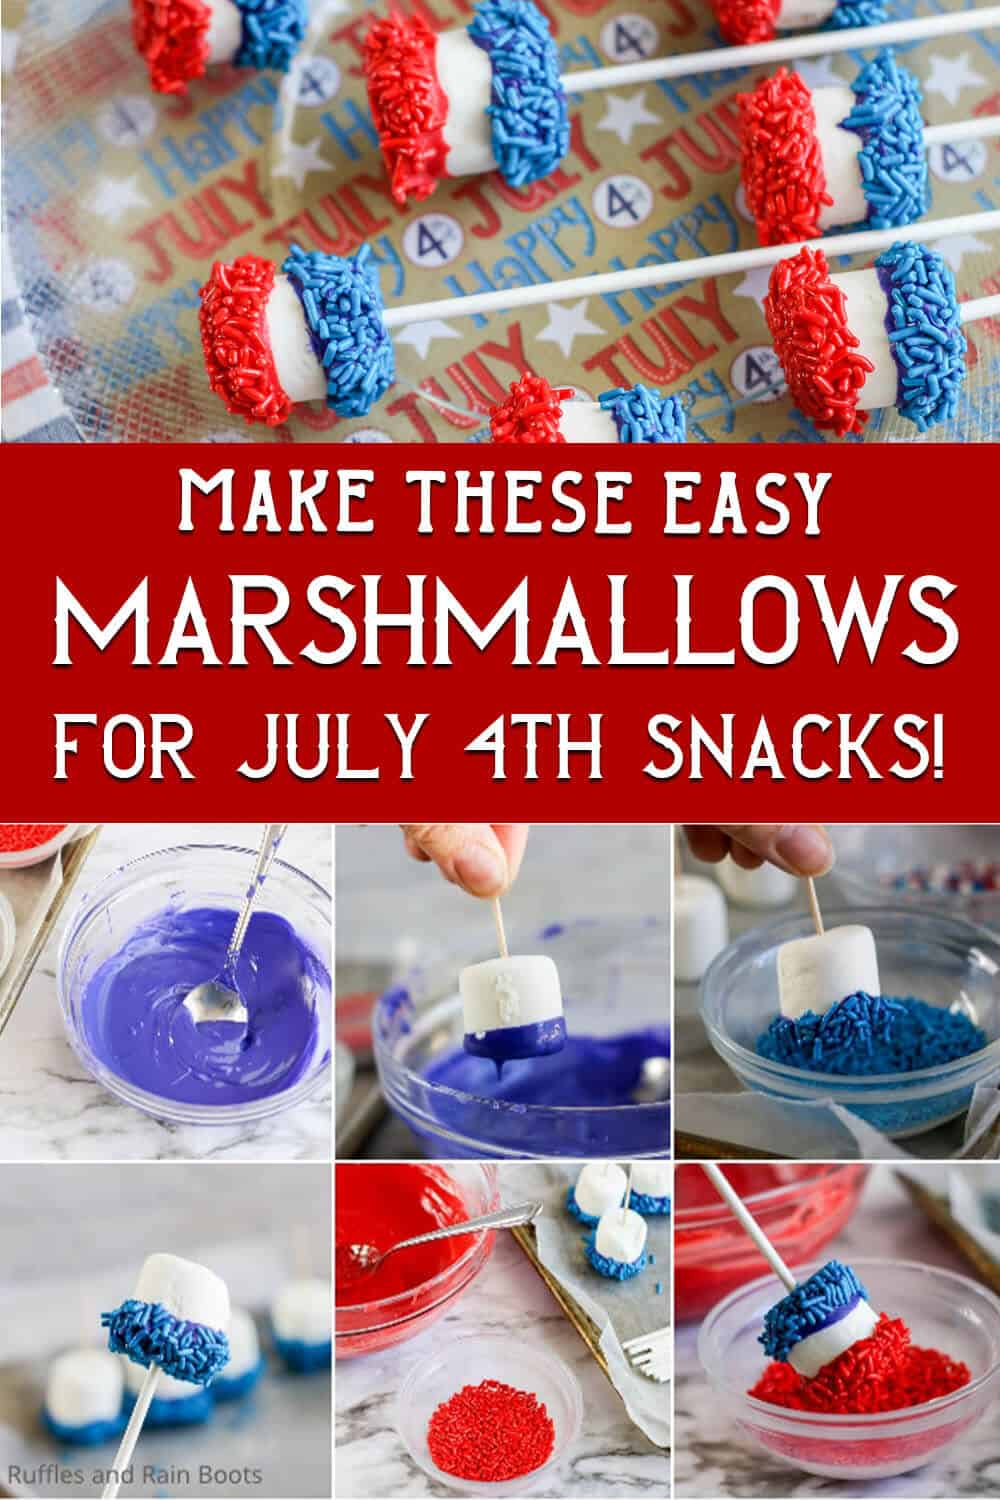 photo collage of dipped marshmallows for july 4th with text which reads make these easy marshmallows for july 4th snacks!